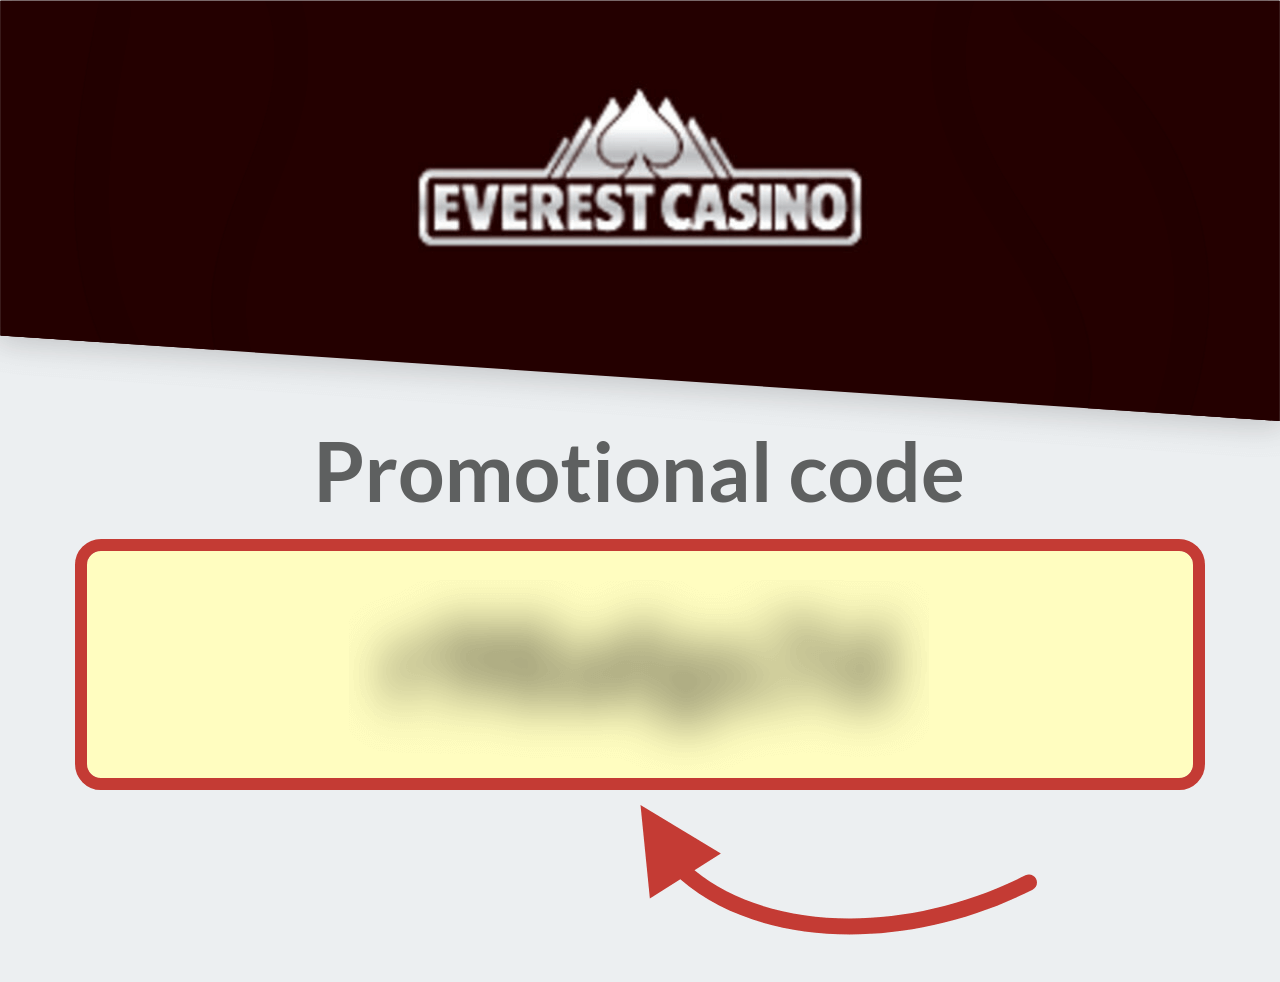 Everest Casino Promotional Code